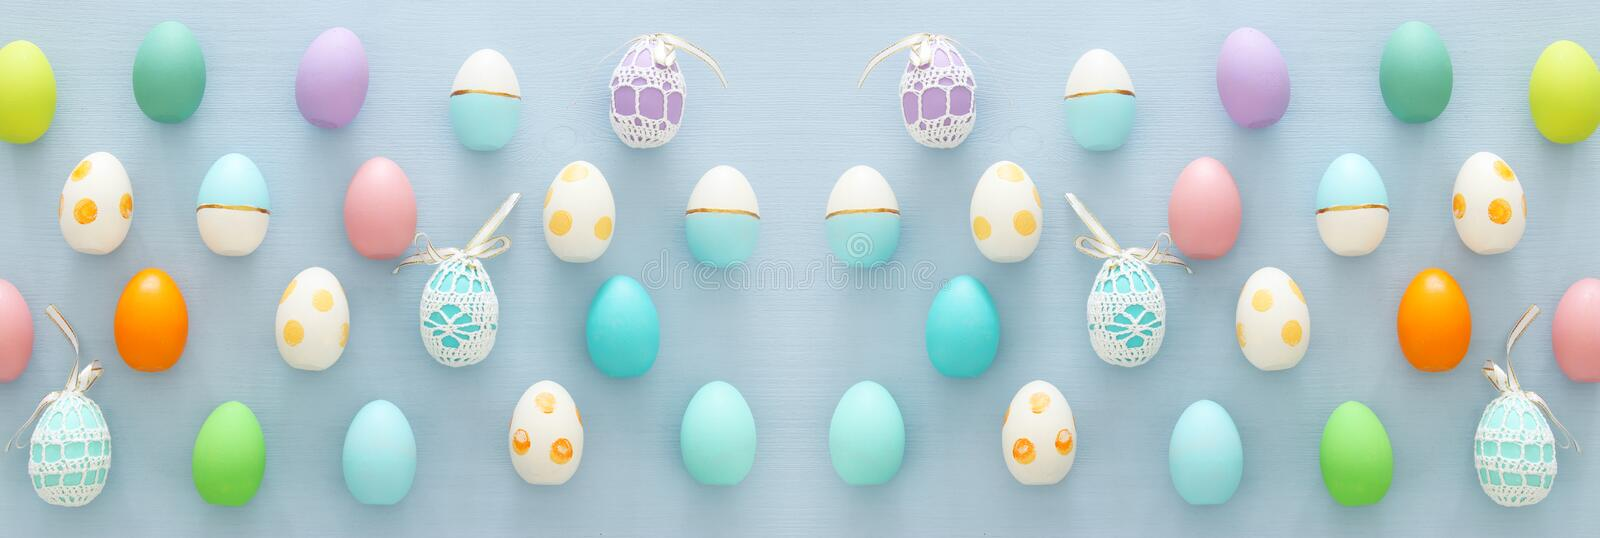 Top view of easter colorful eggs over blue background. Top view of easter colorful eggs over blue background stock image